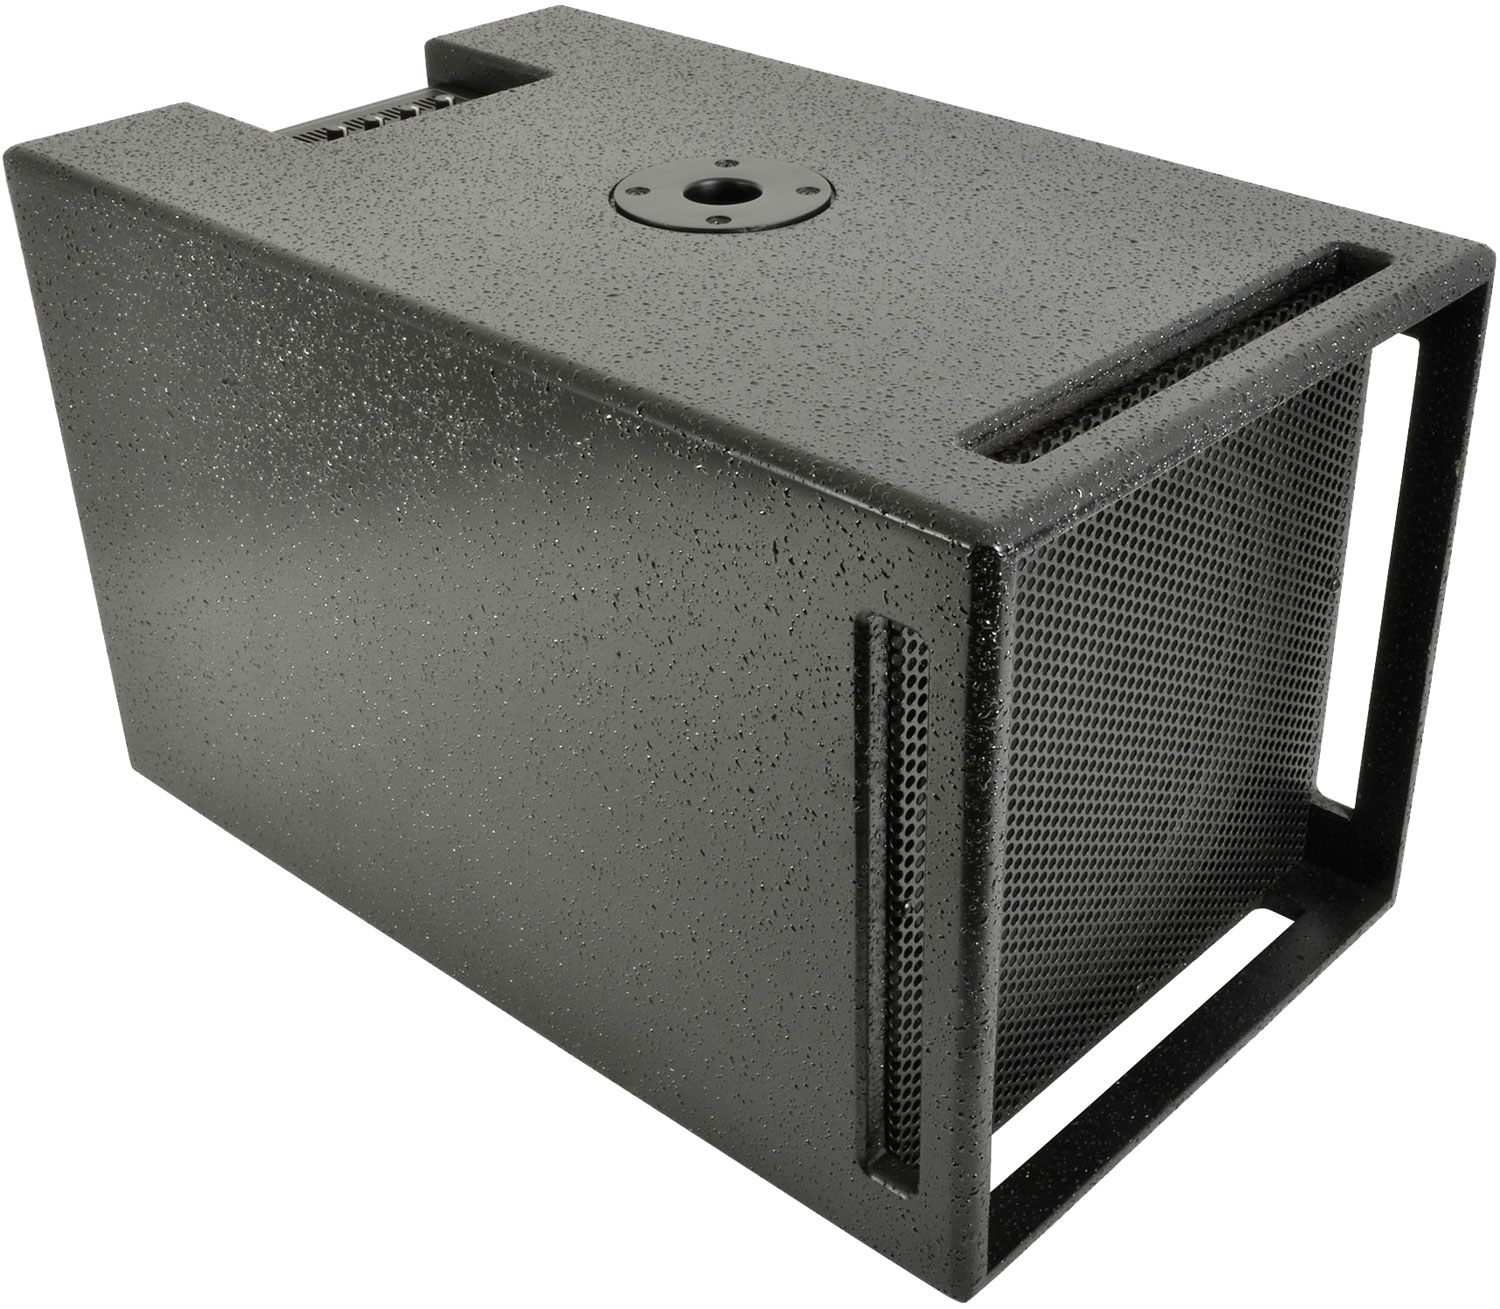 CXB-10A active subwoofer with satellite outputs